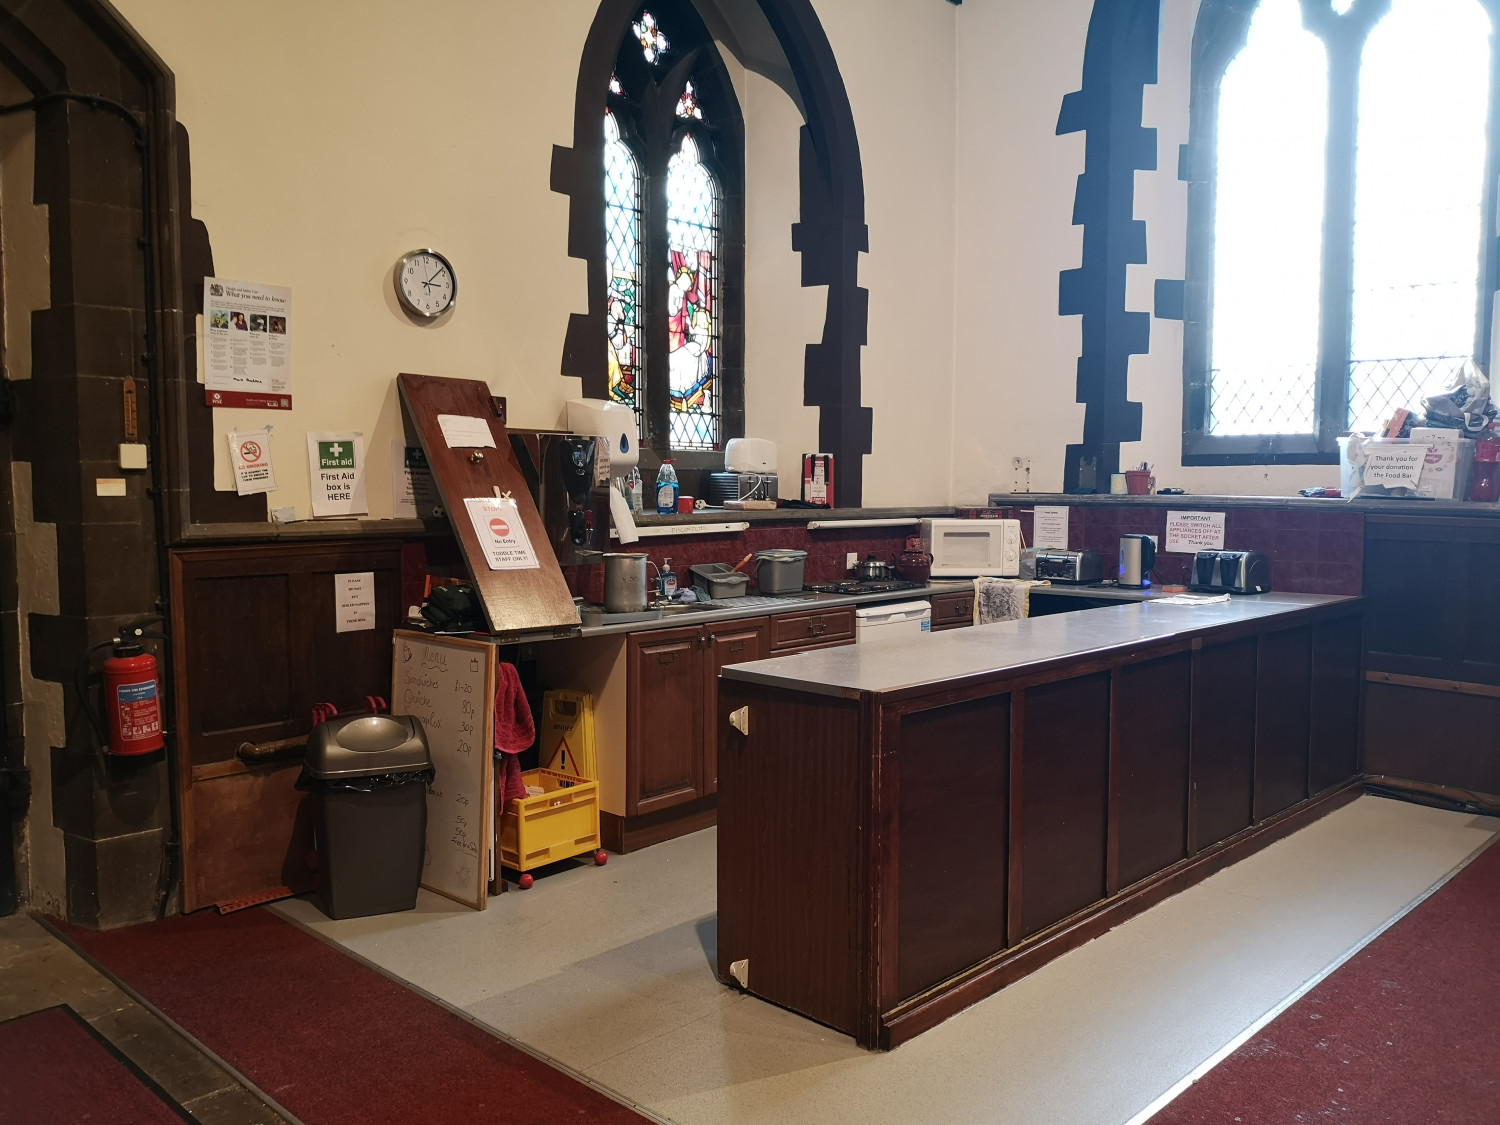 image of kitchen area in church